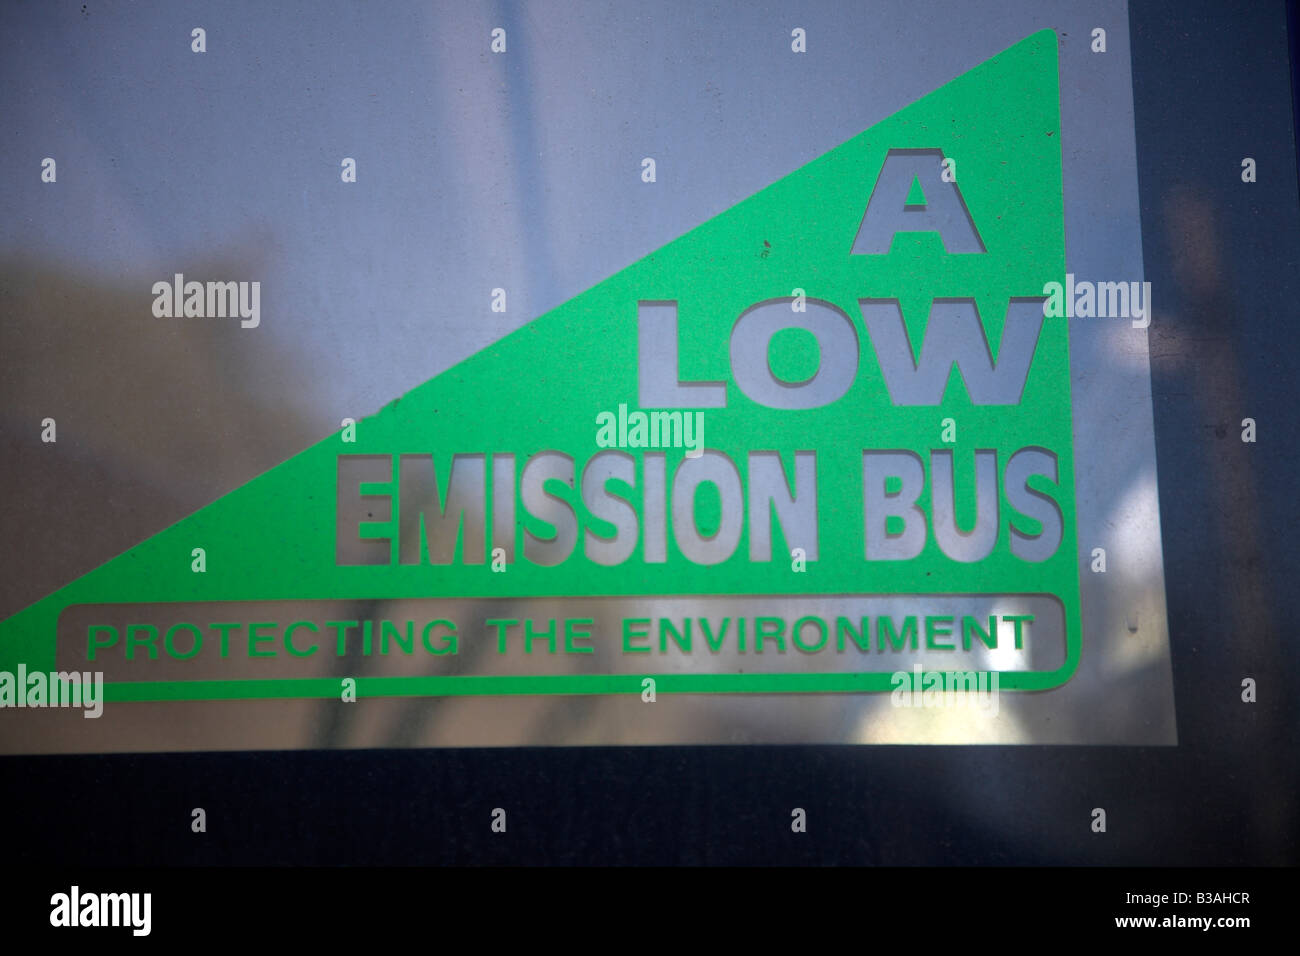 A low emission bus sign in back windscreen glass - Stock Image